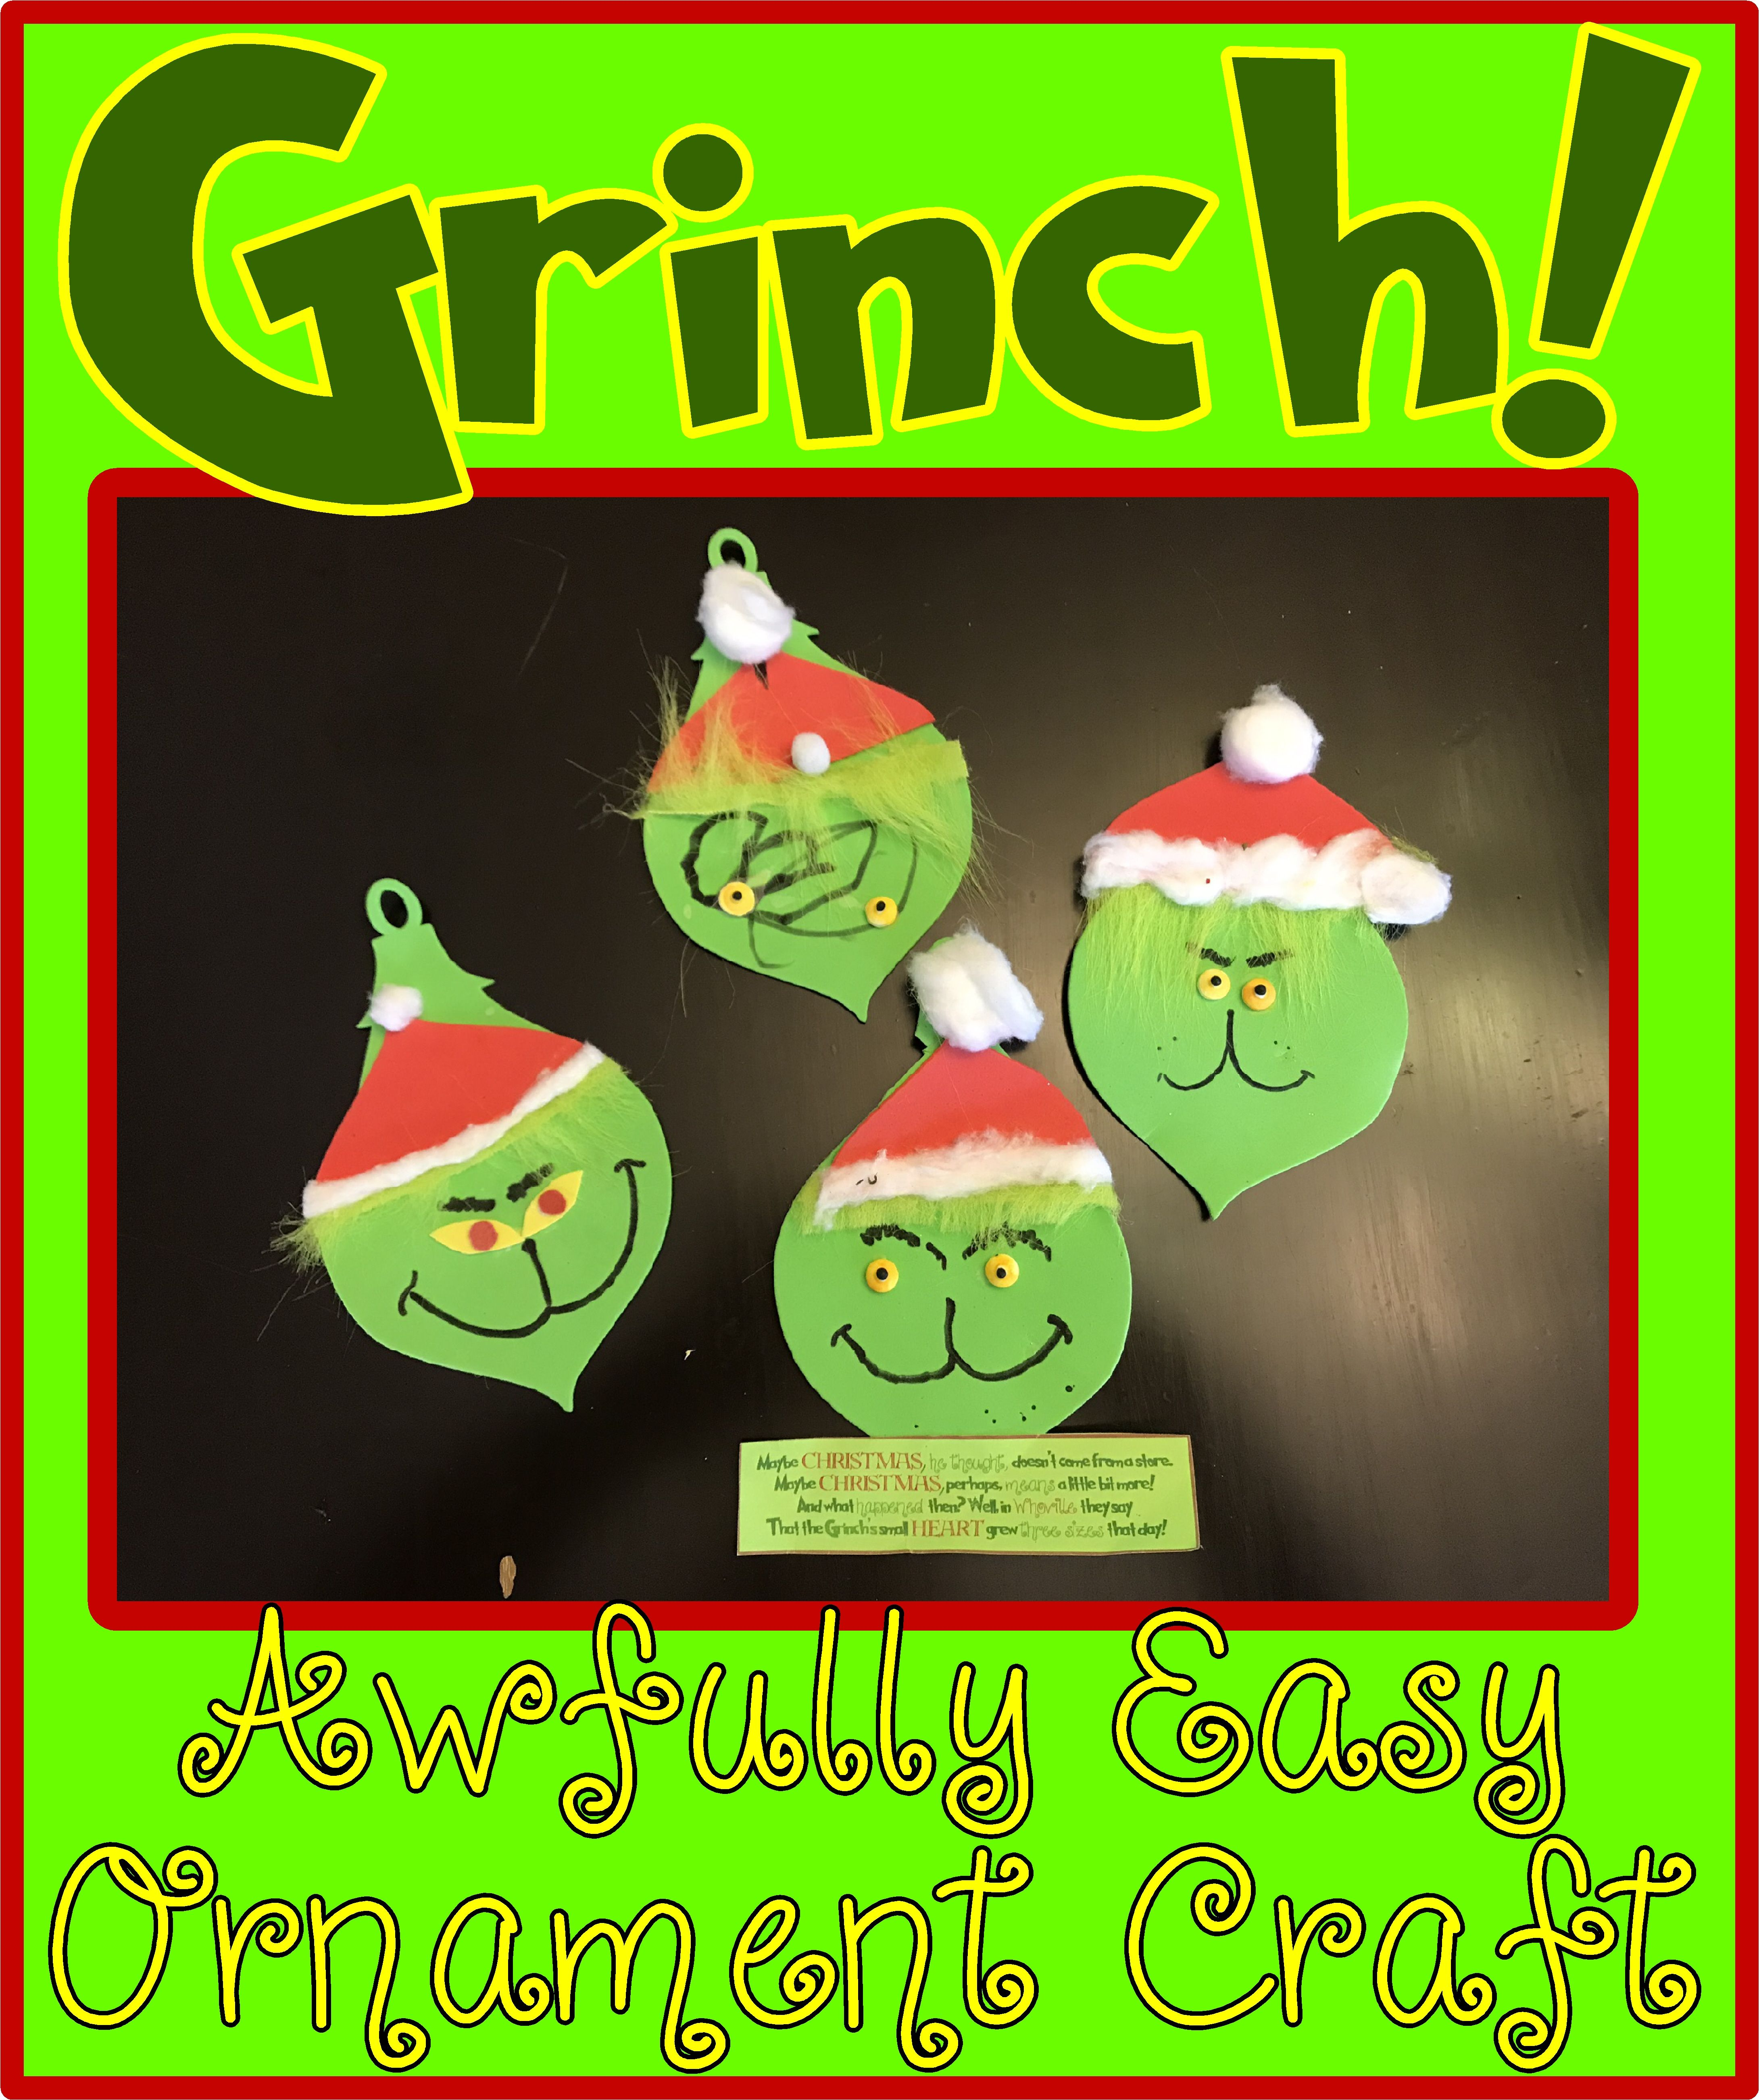 See How To Make An Easy Grinch Craft Ornament Grinch Ornament Christmas Craft Grinch Crafts Grinch Decorations Grinch Ornaments